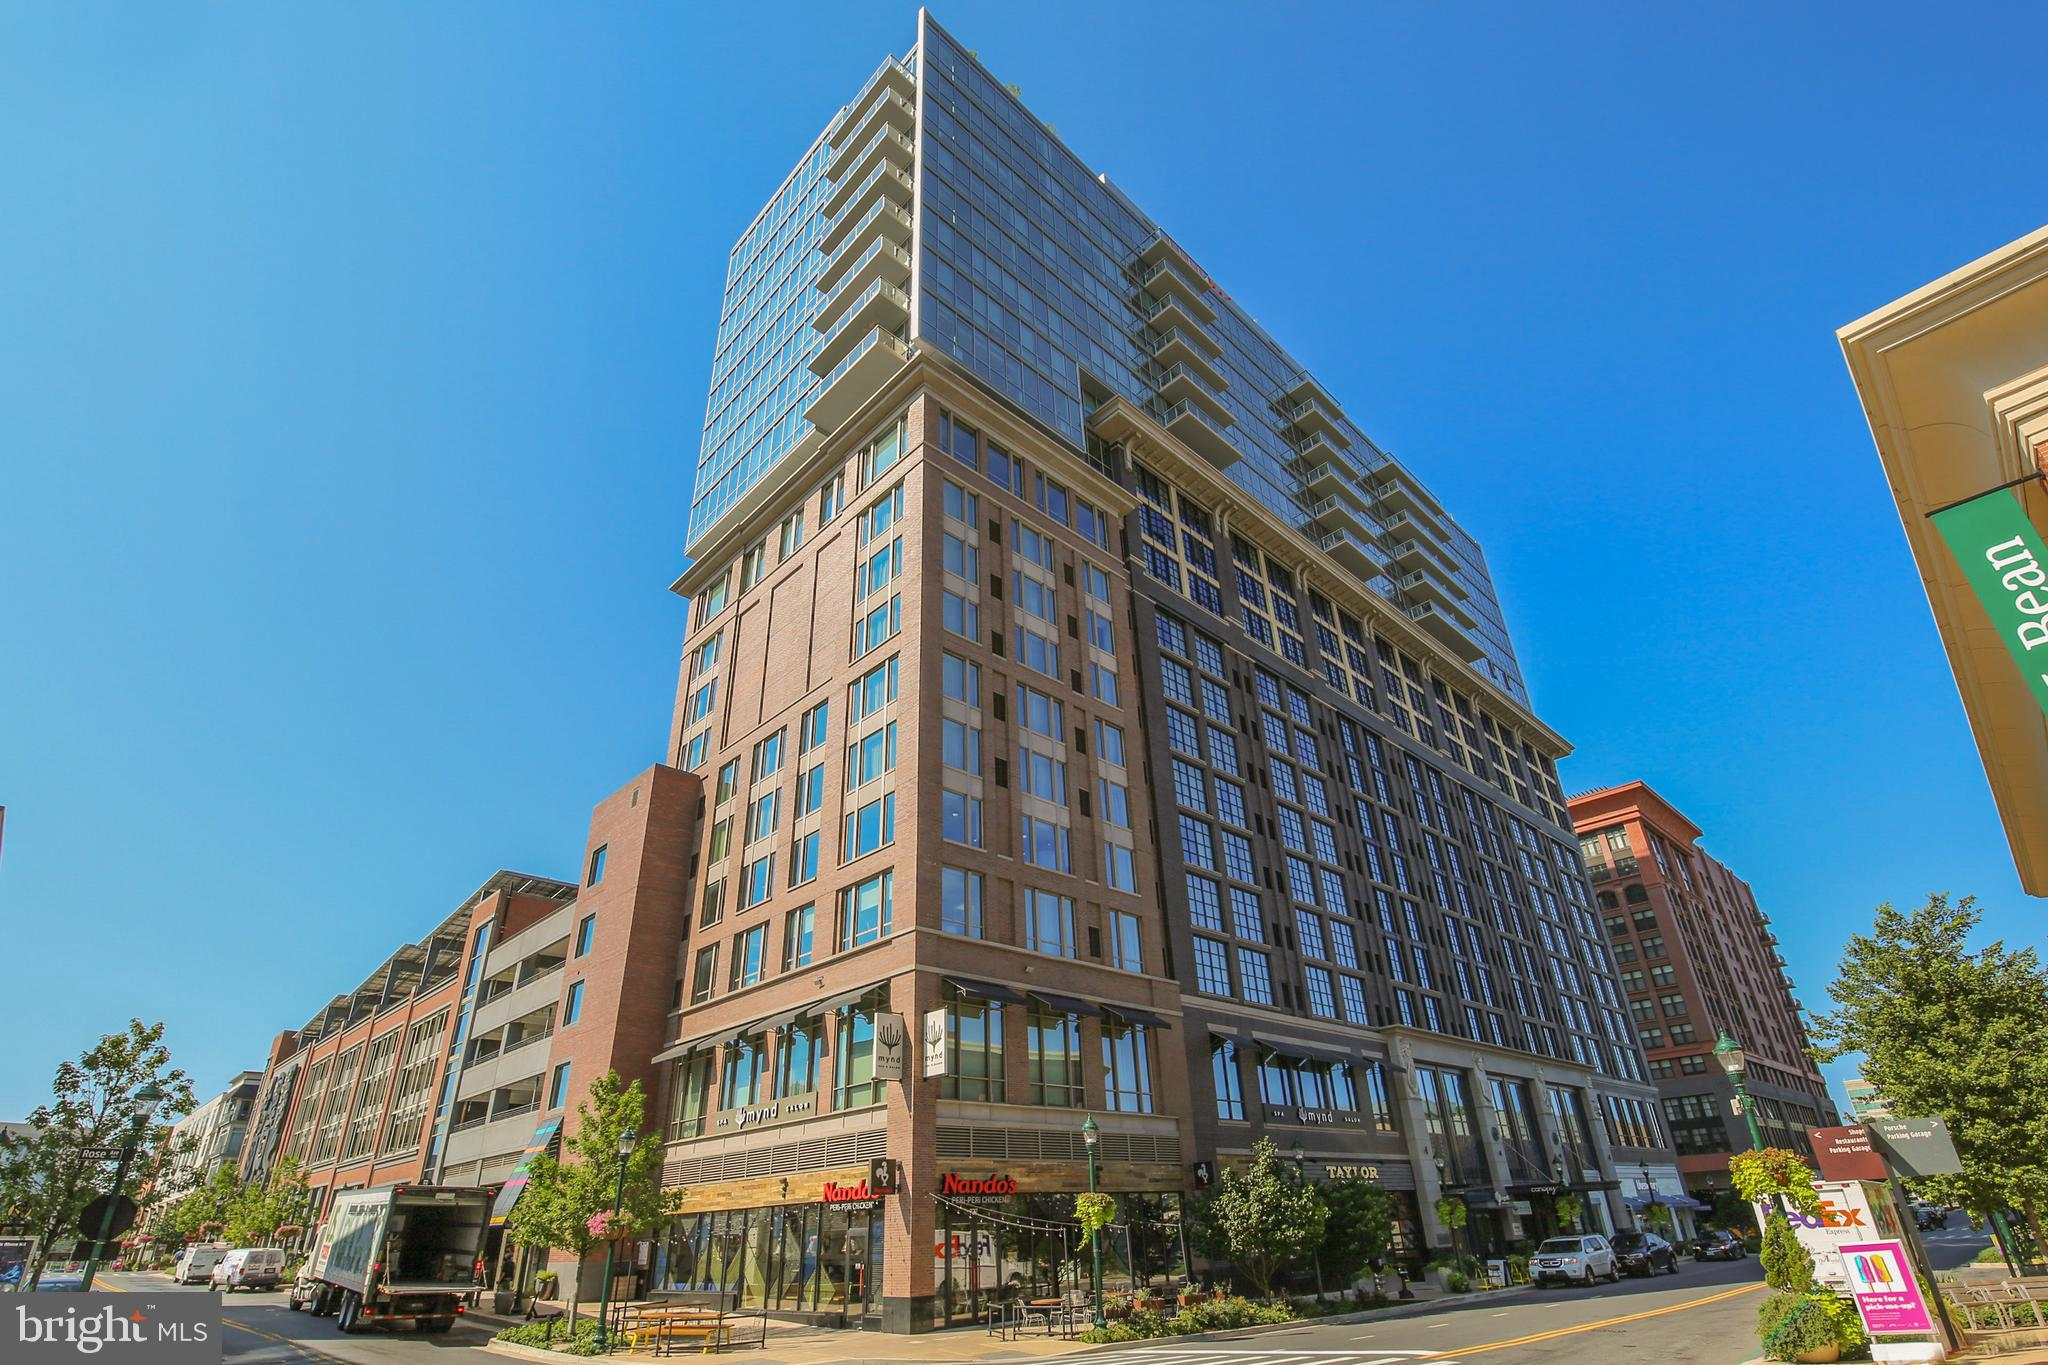 Live the urban life of your dreams at the heart of North Bethesda's exciting Pike & Rose district. This 2-bedroom/2-bathroom unit bursts with light from floor-to-ceiling windows. Luxury features include hardwood flooring,  generous cabinet space, stainless-steel appliances, and a gas range.   Building amenities include a rooftop club room, a fitness center, and a dog  park with its sweeping views of your surroundings.  Must be seen to be believed.  Walk to the White Flint Metro station, casual and fine dining, shopping and entertainment. Located just minutes from I-270 and the Capital Beltway. Discover the excitement for yourself!